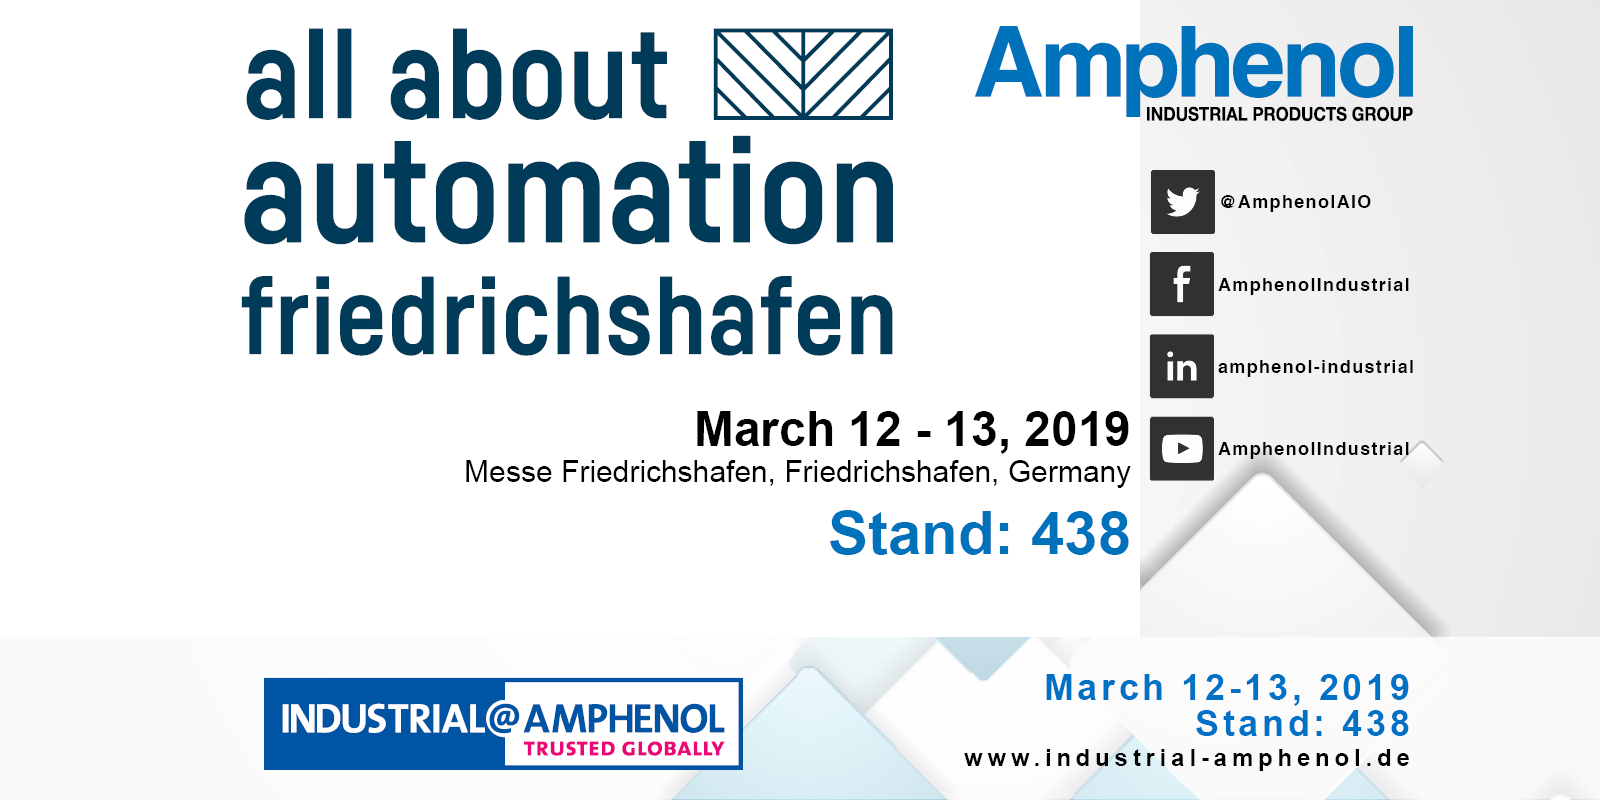 All About Automation Friedrichshafen 2019 Social Media